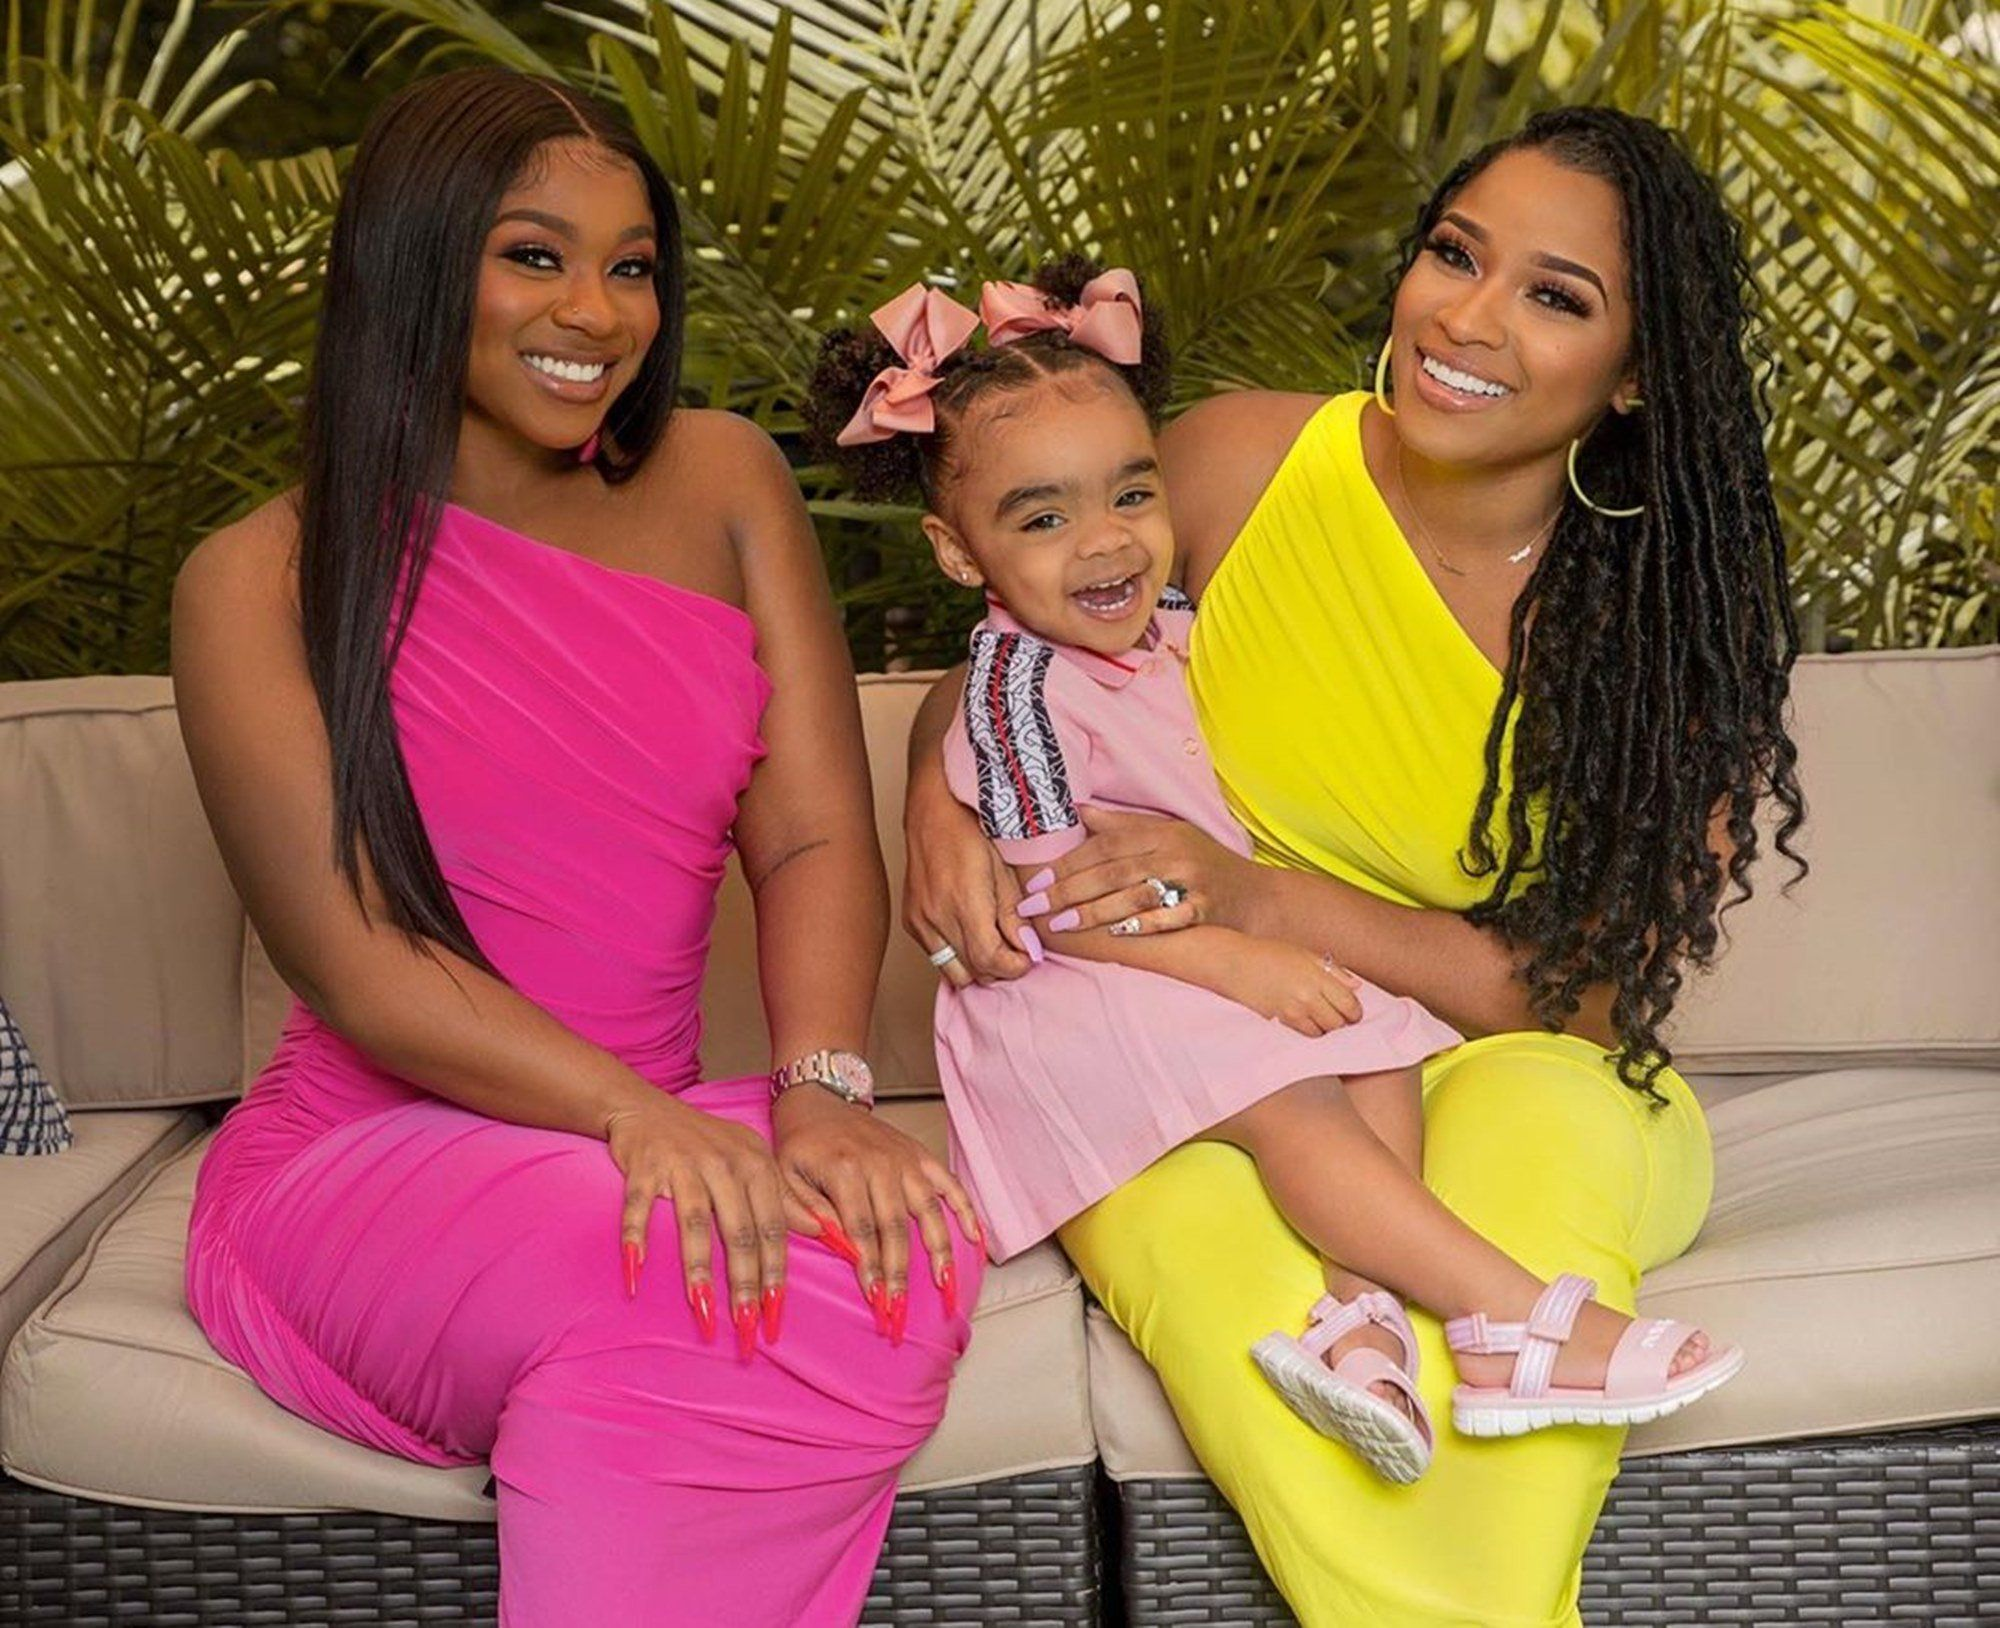 reginae-carter-claps-back-at-hater-who-criticized-her-hair